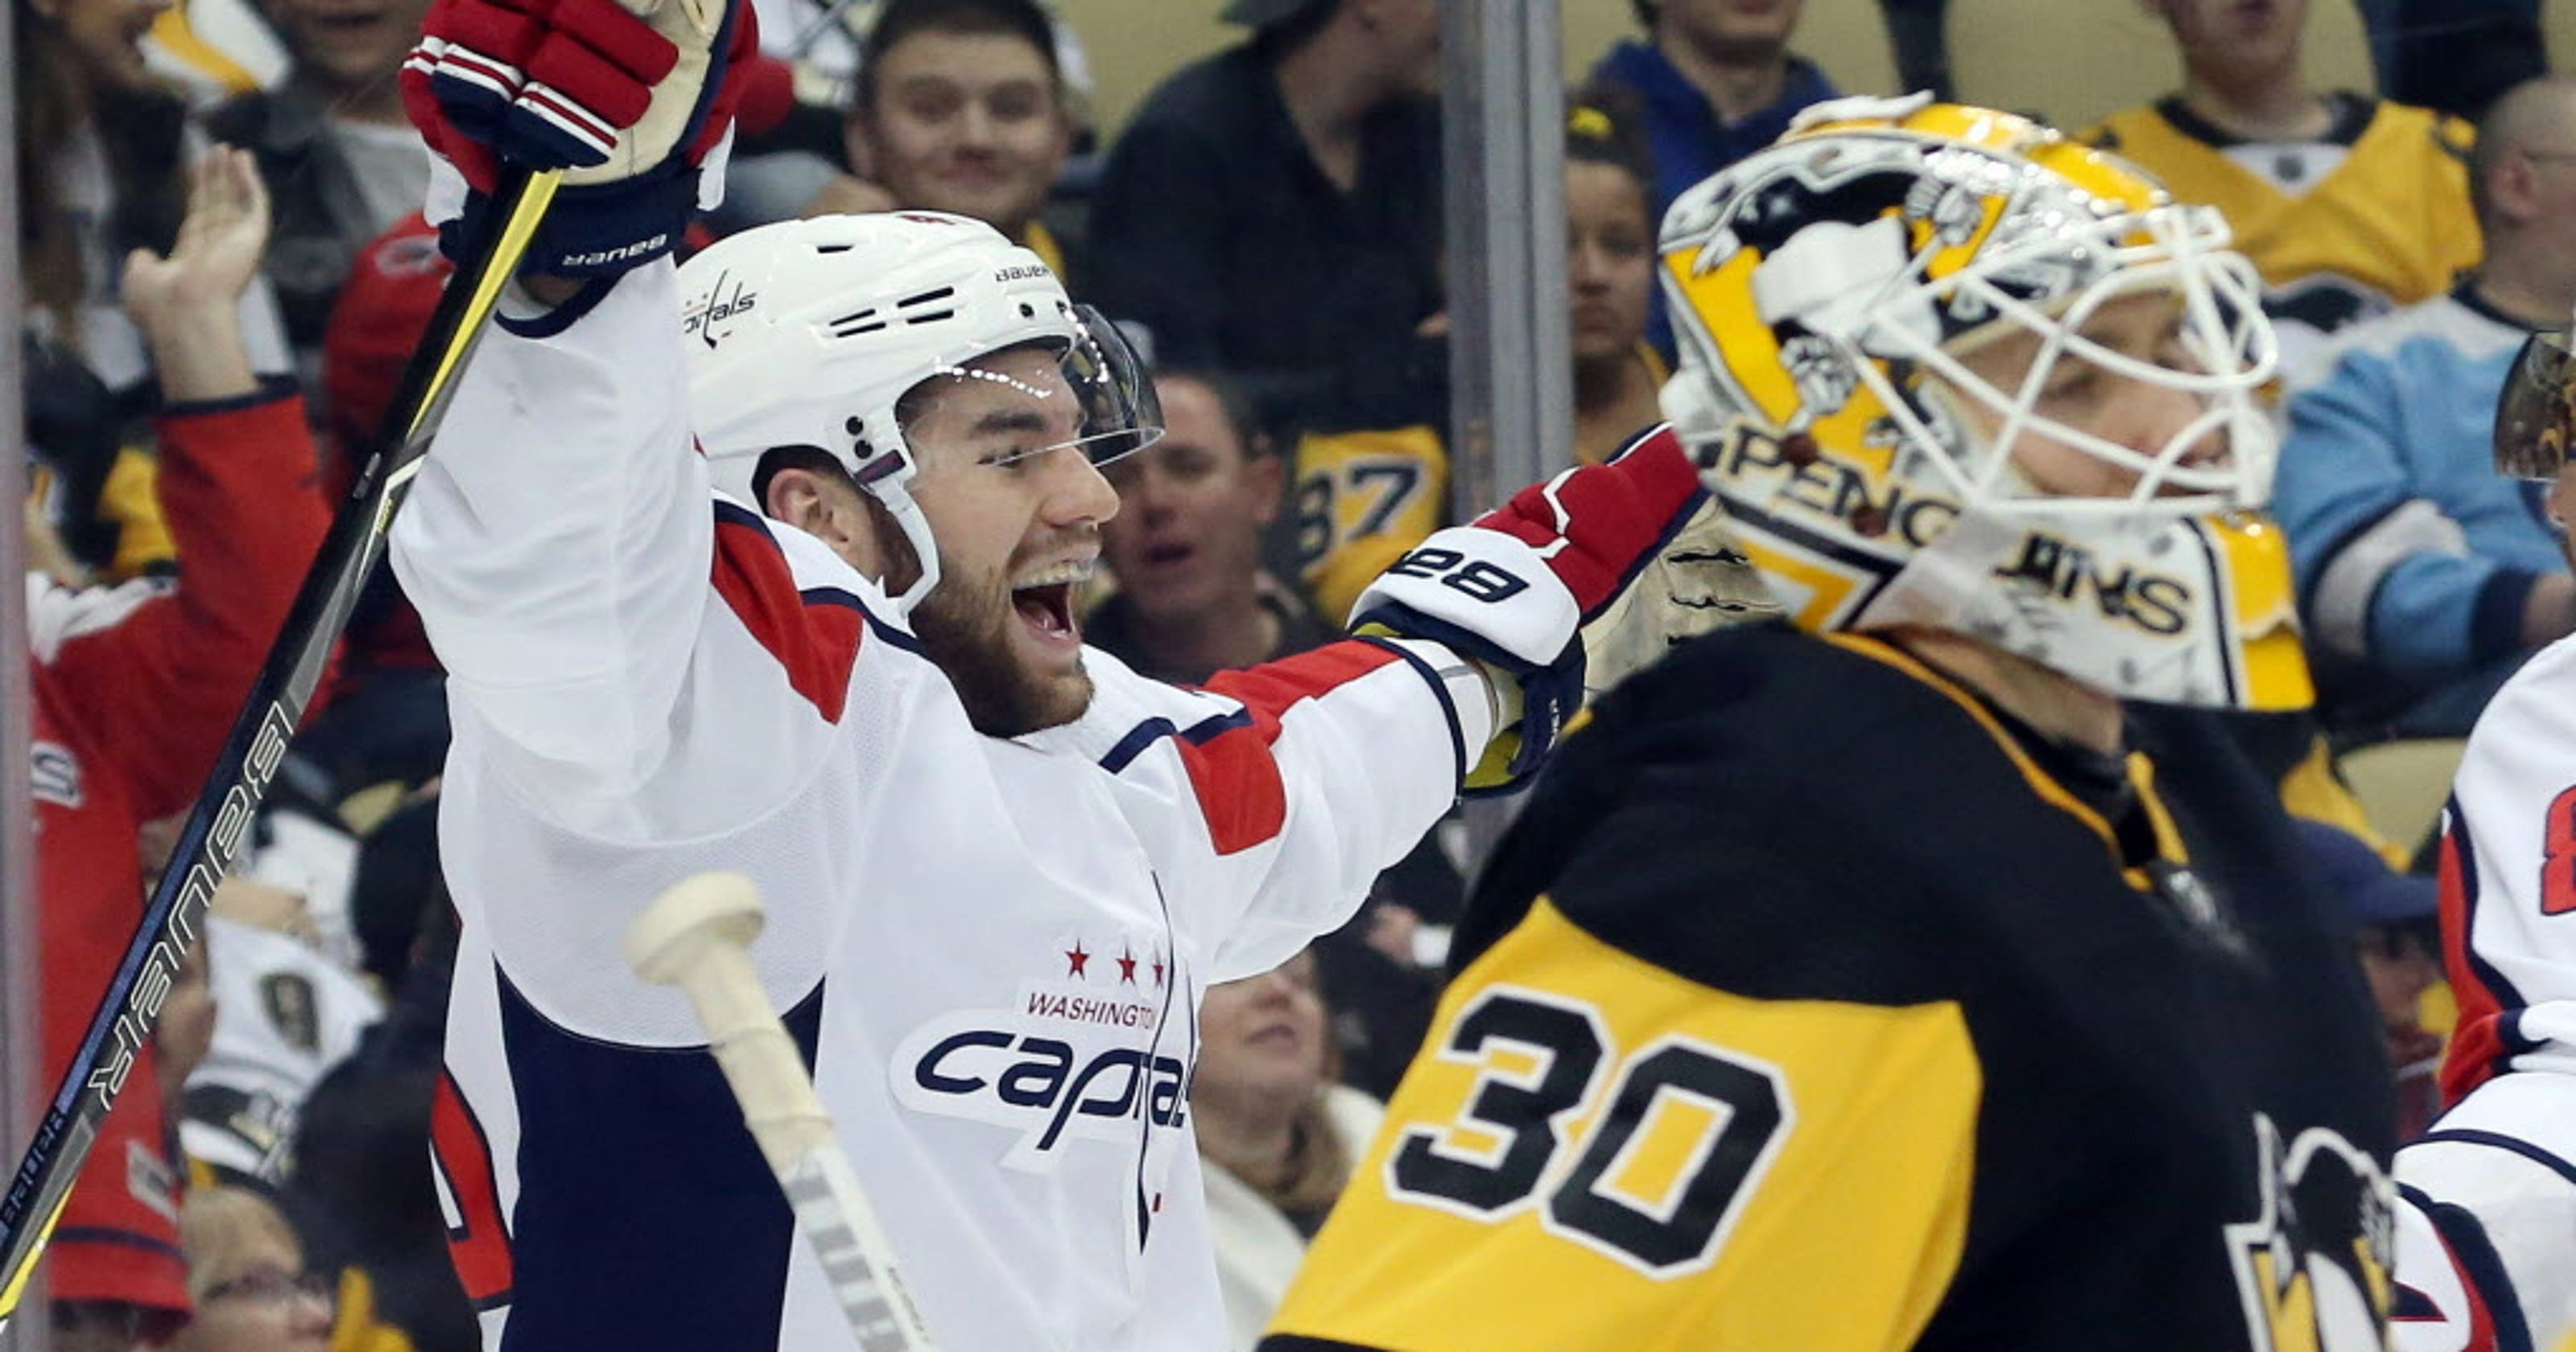 f81aca7542b Washington Capitals clinch division title after win vs. Pittsburgh Penguins